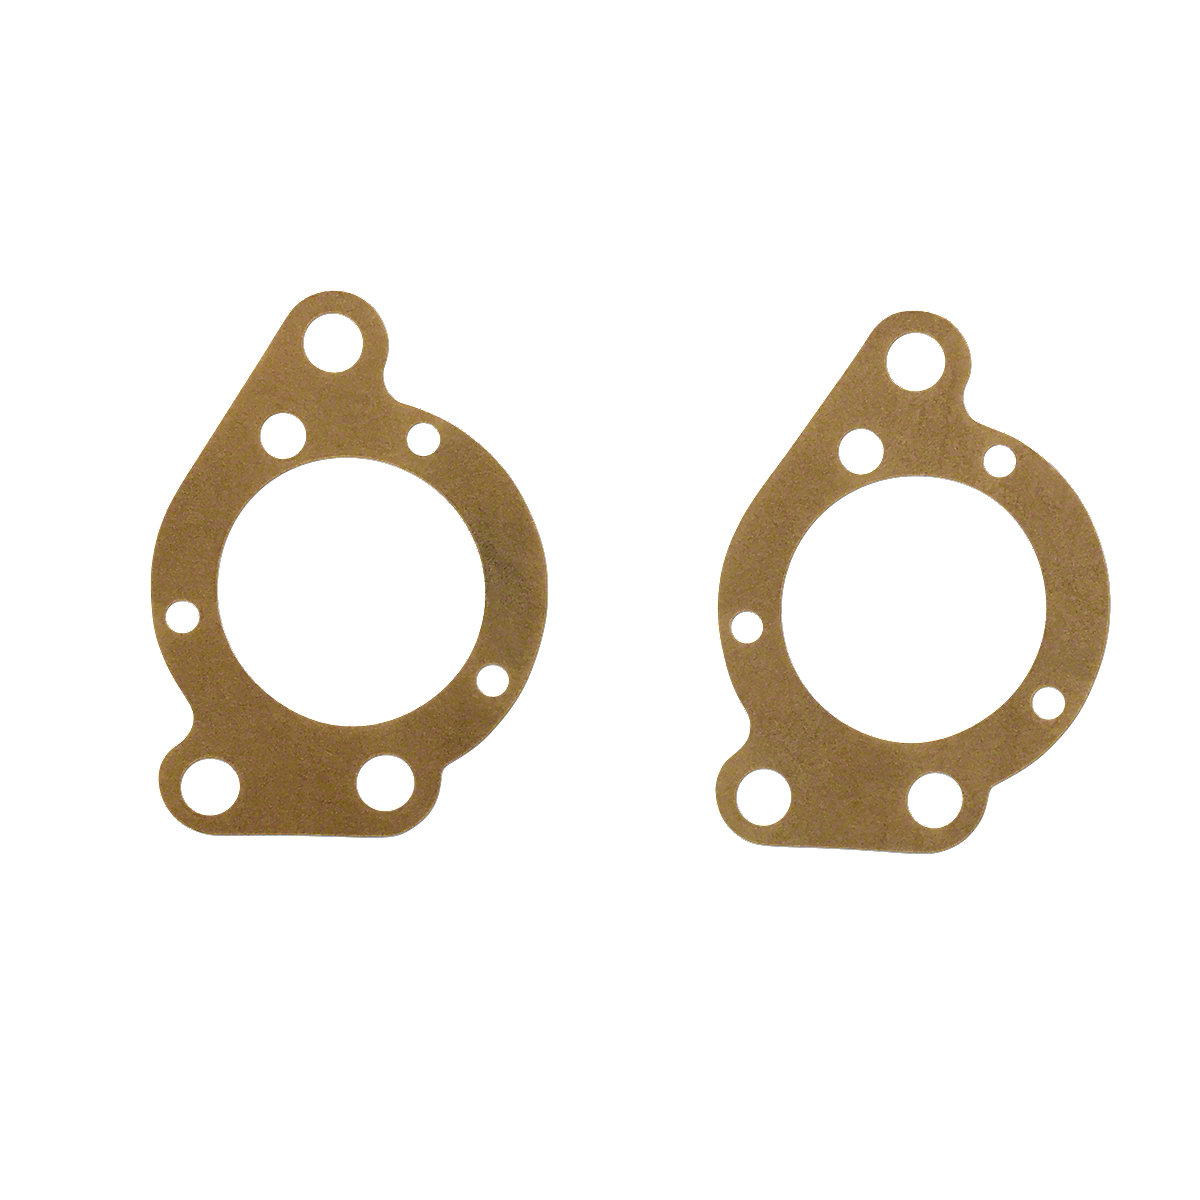 Steiner Tractor Parts Oil Pumps : Oil pump outer cover gaskets acs